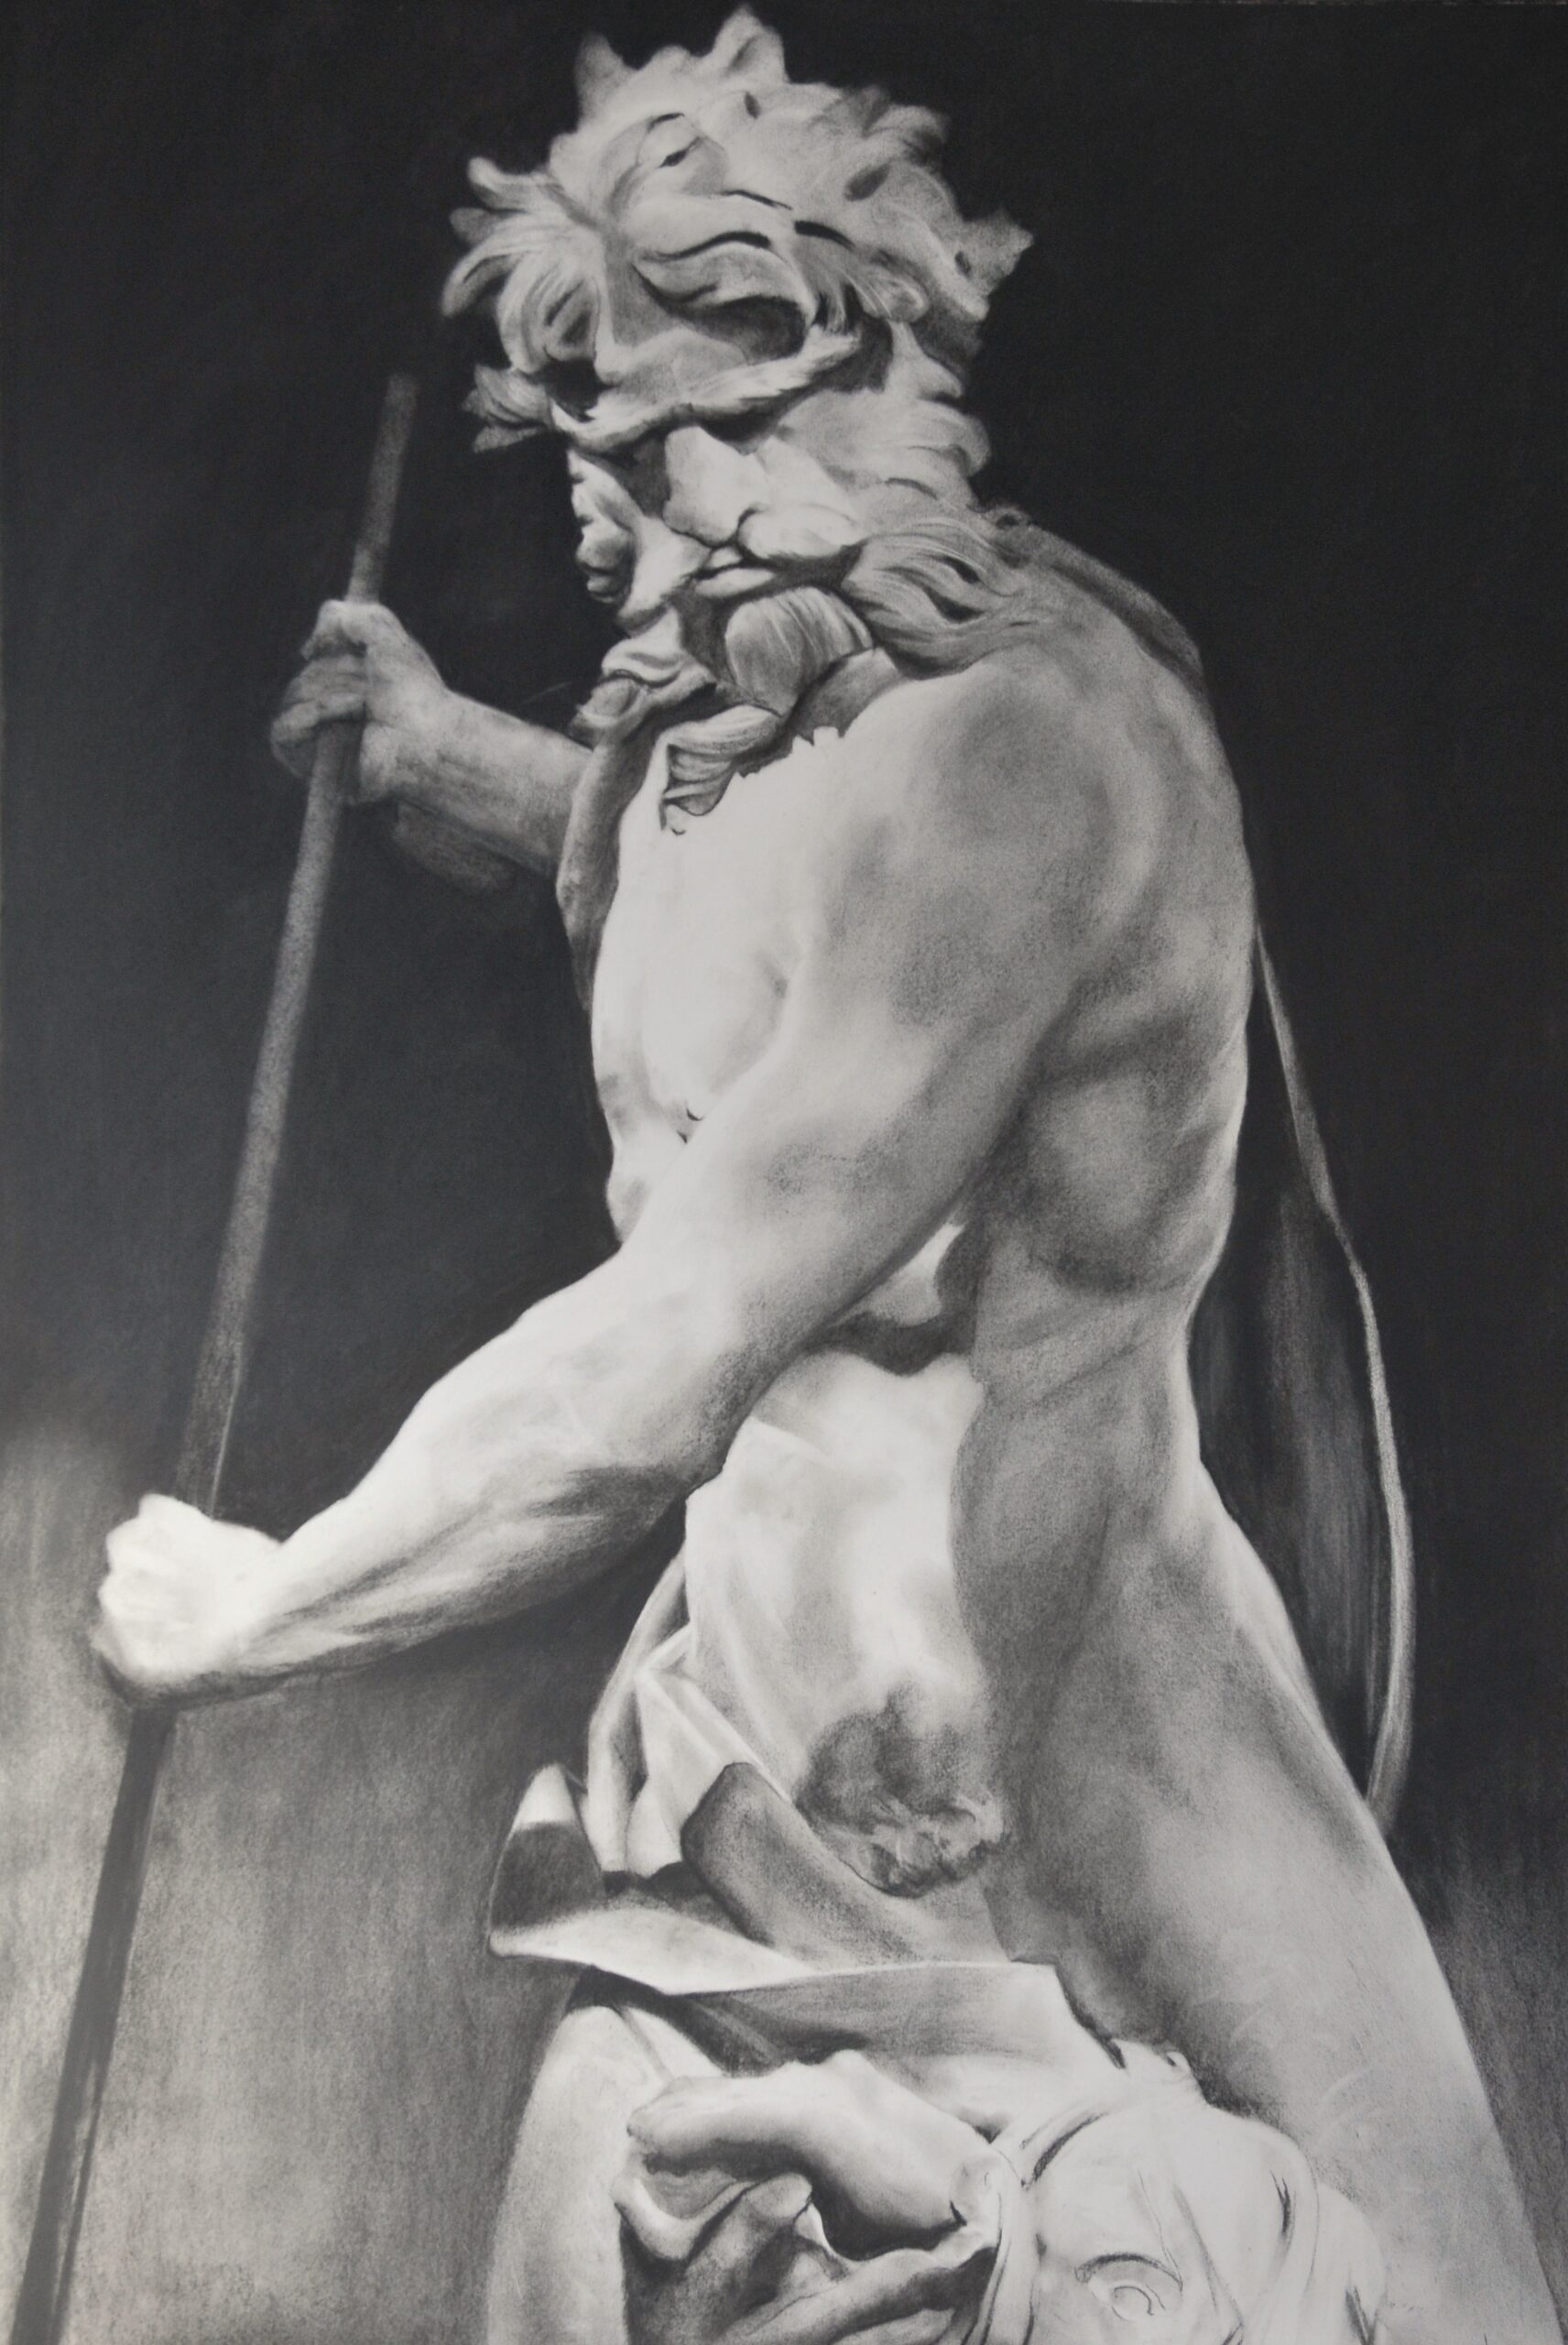 Charcoal drawing of statue of Neptune and Triton by Bernini at the V&A Museum